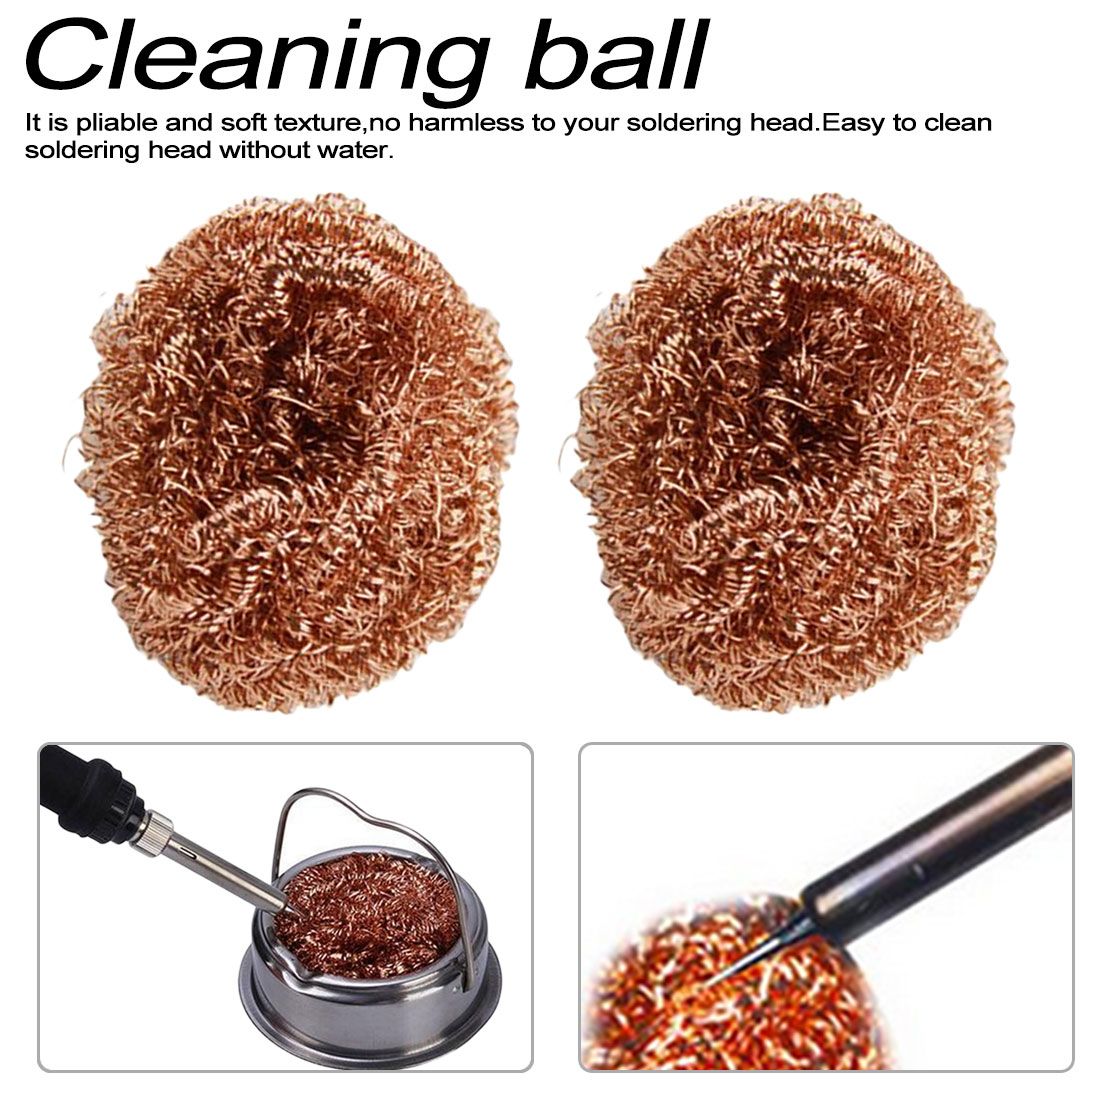 New Steel Wire SpongeDesoldering Soldering Iron Mesh Filter Cleaning Nozzle Tip Copper Wire Ball Clean Ball Dross